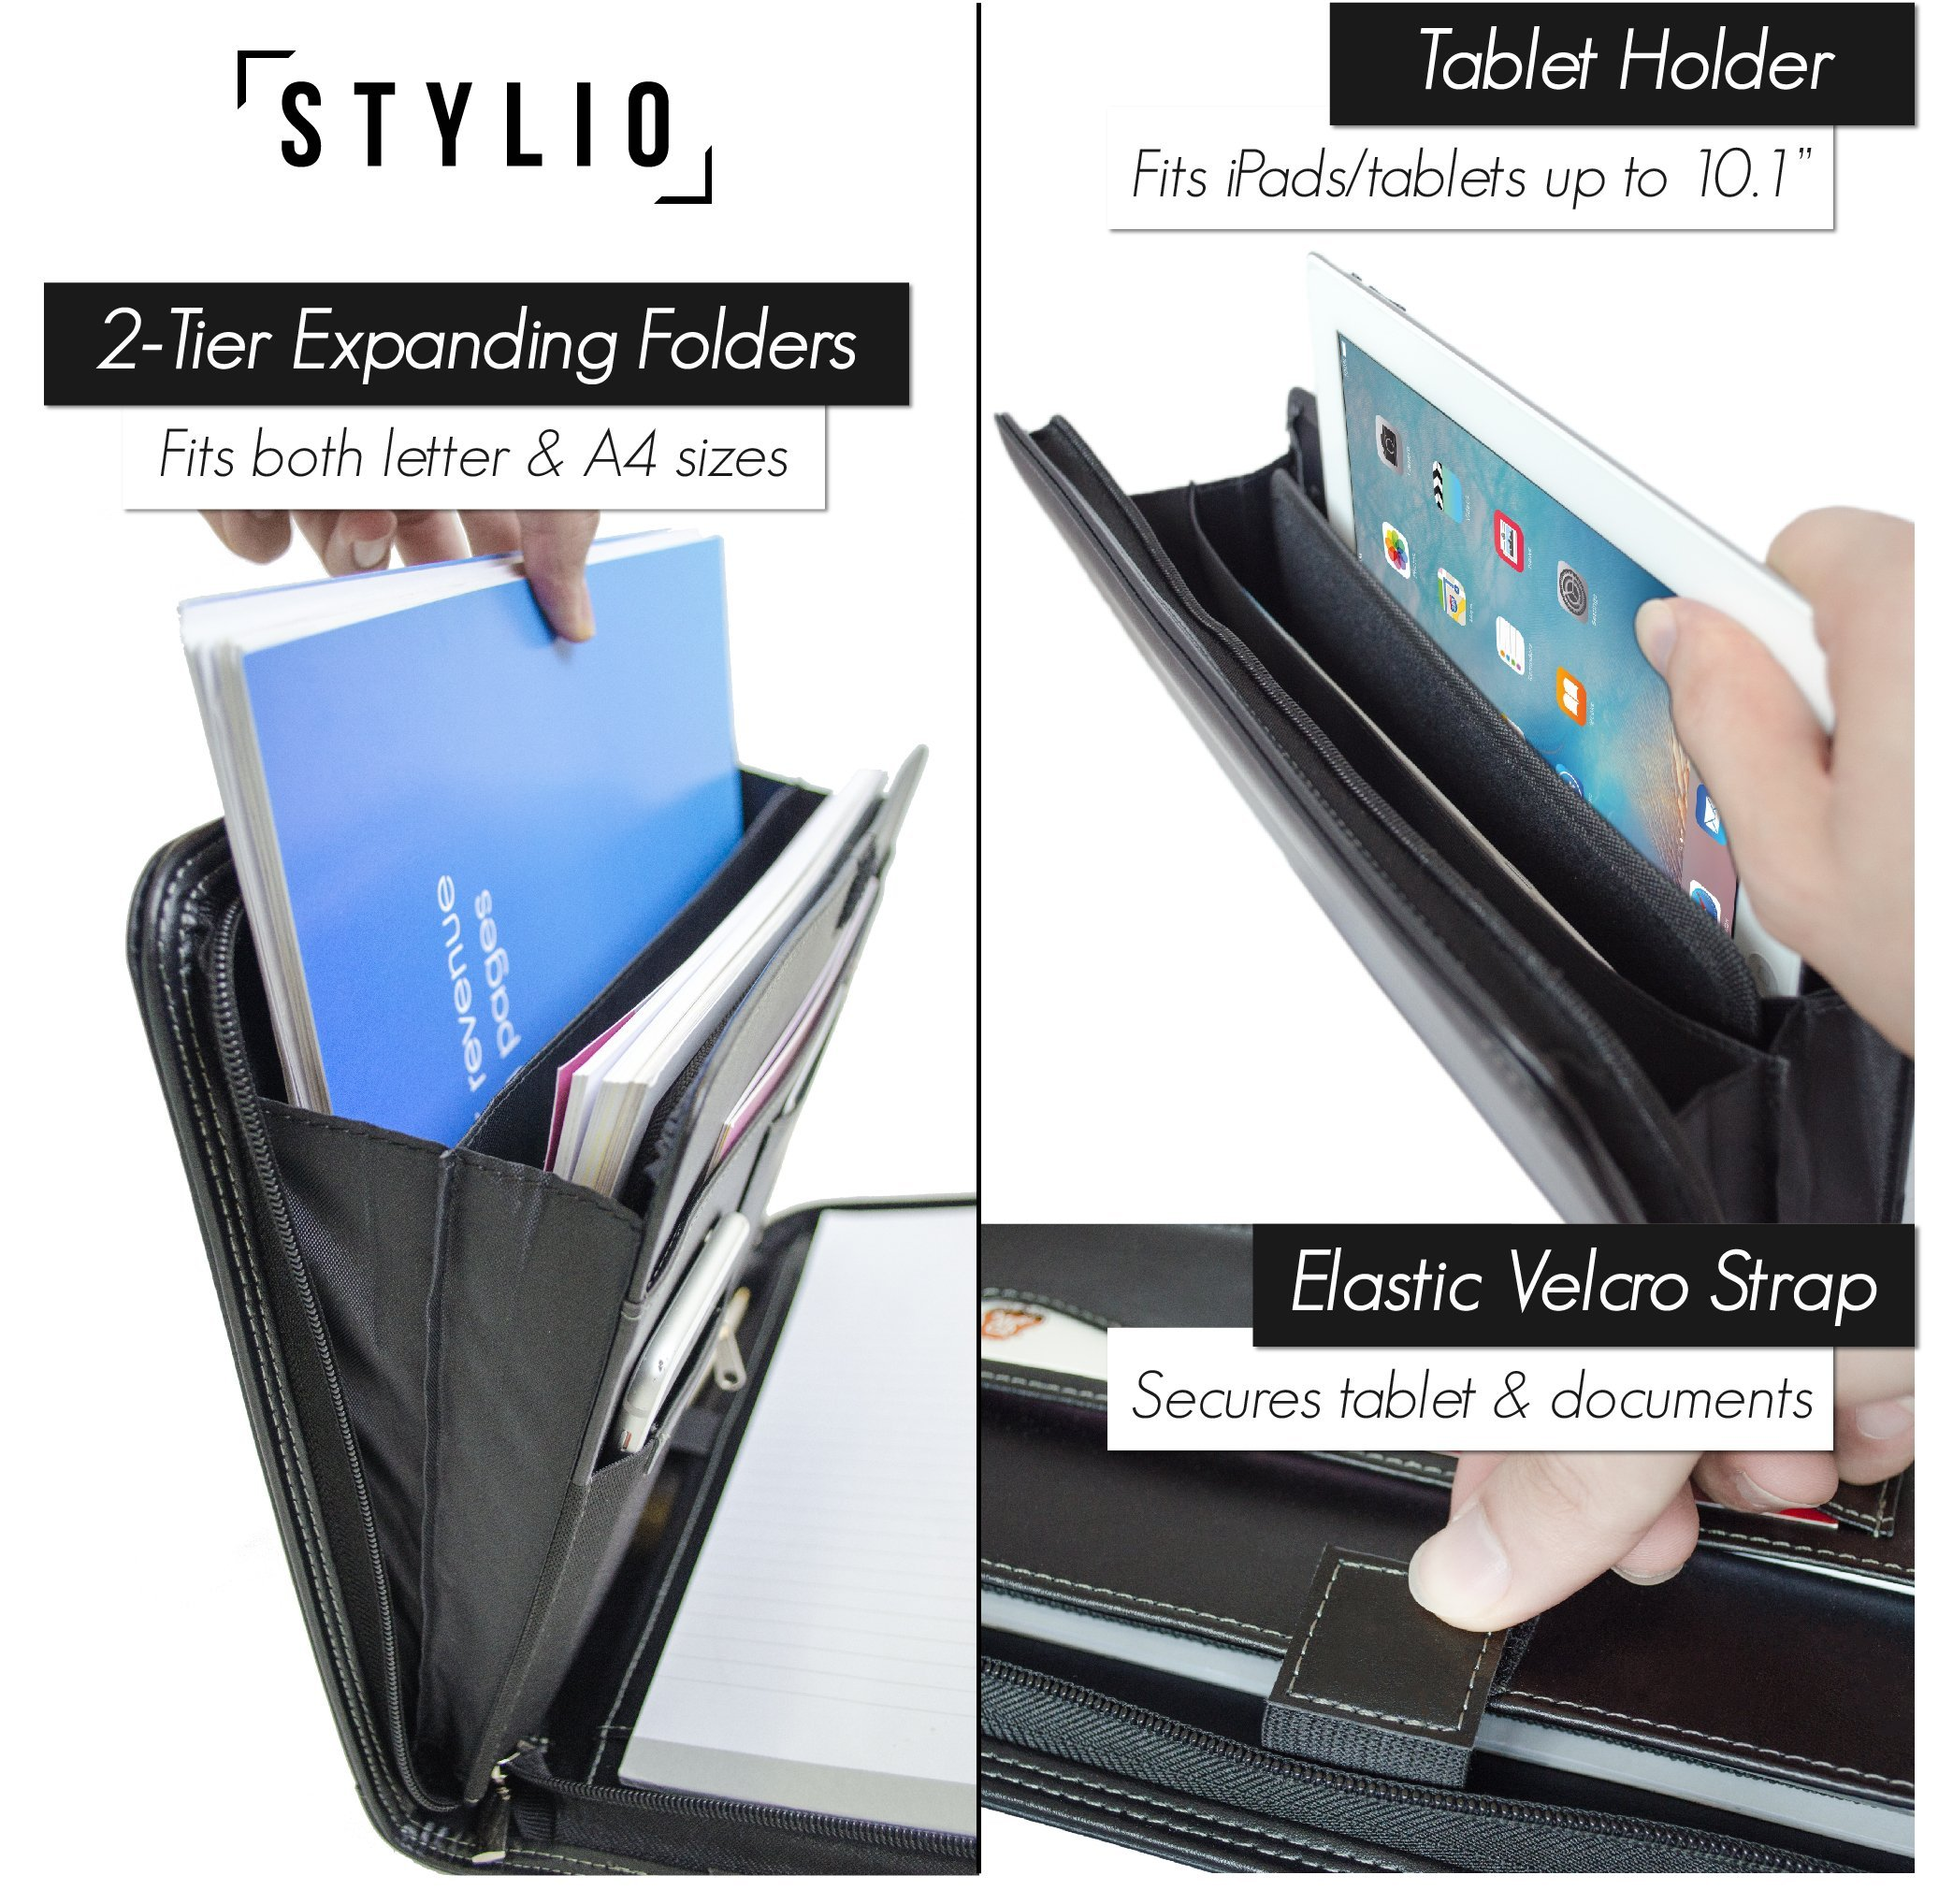 STYLIO Zippered Padfolio Portfolio Binder, Interview Resume Document Organizer. Internal Holders For iPad/Tablet (up to 10.1''), Phone & Business Cards. Faux Leather Data Case with Letter-Sized Notepad by Stylio (Image #4)